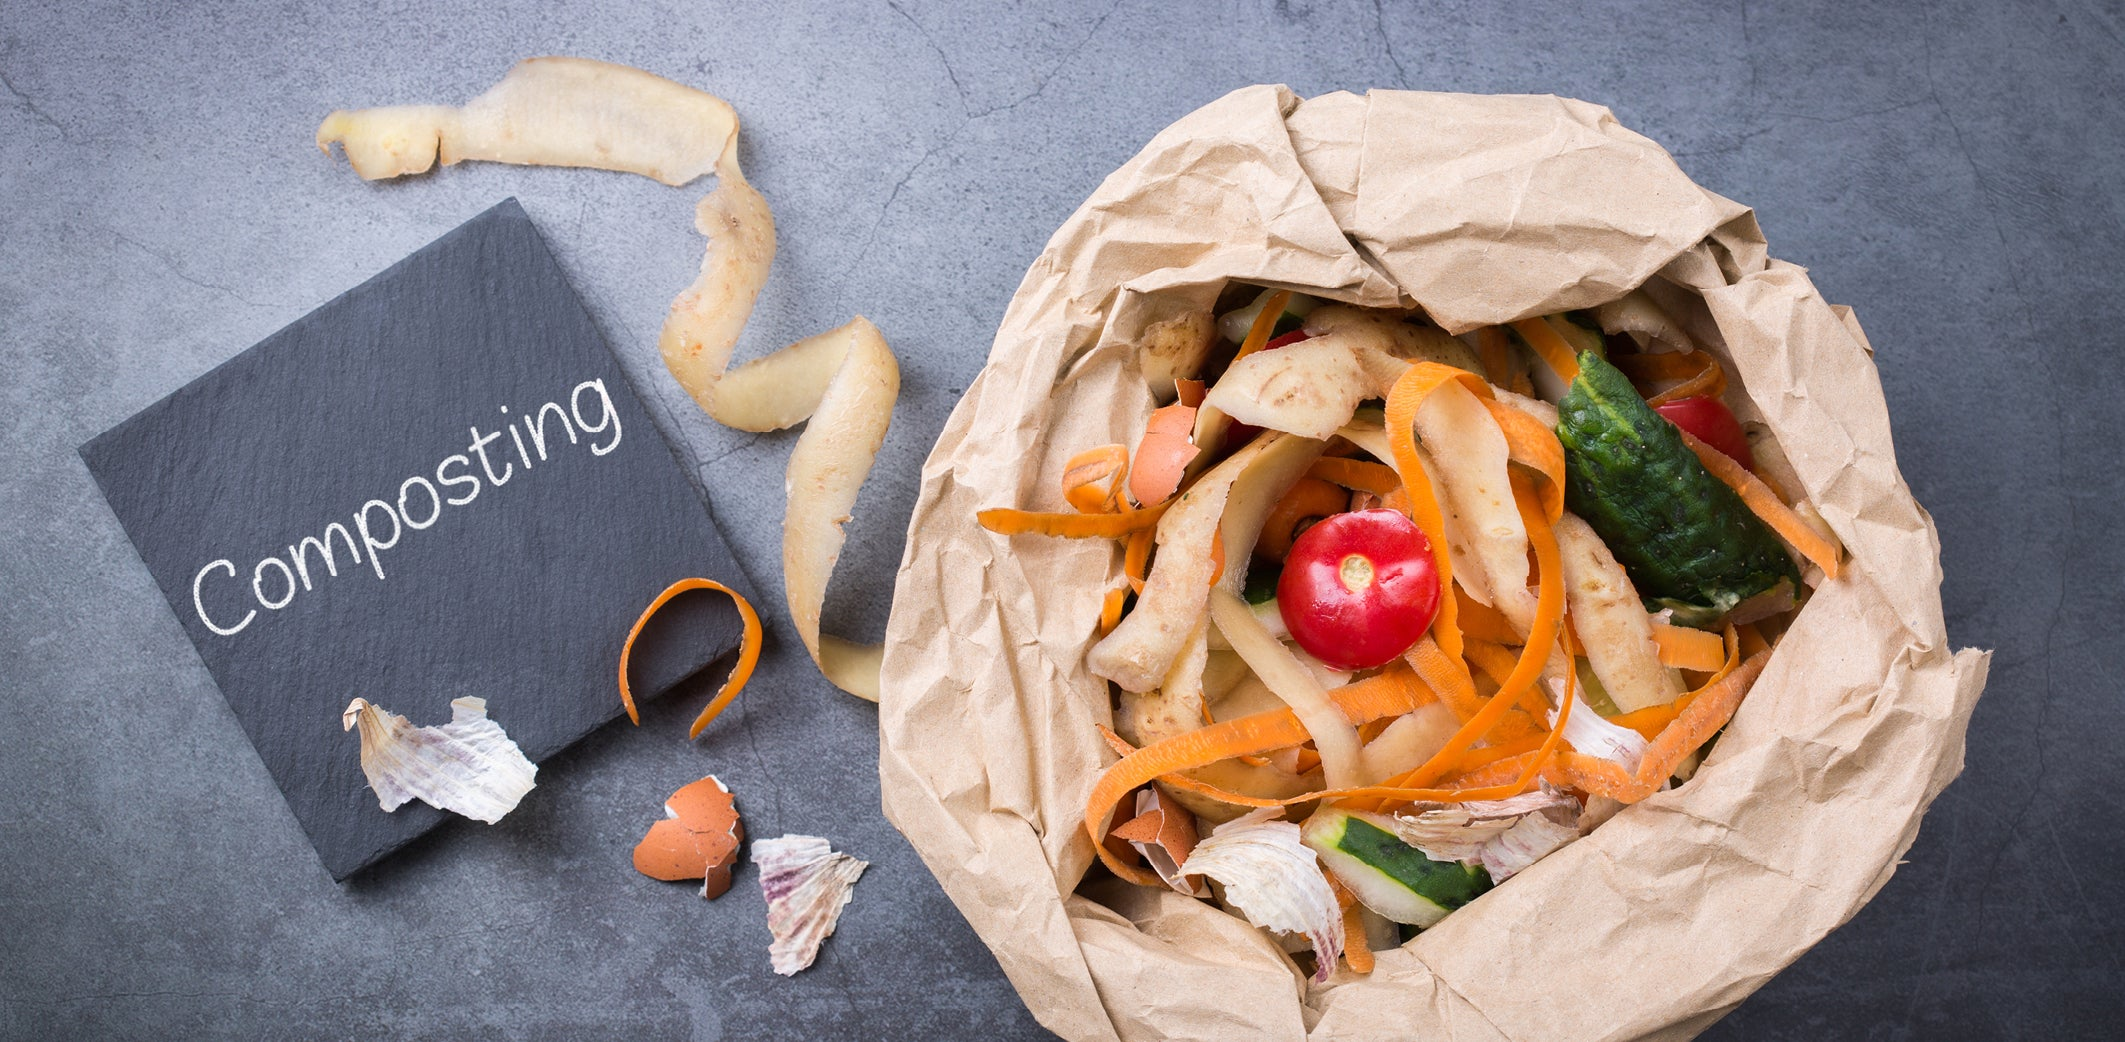 trash bags which to use - Compostable, Biodegradable or Recycled plastic